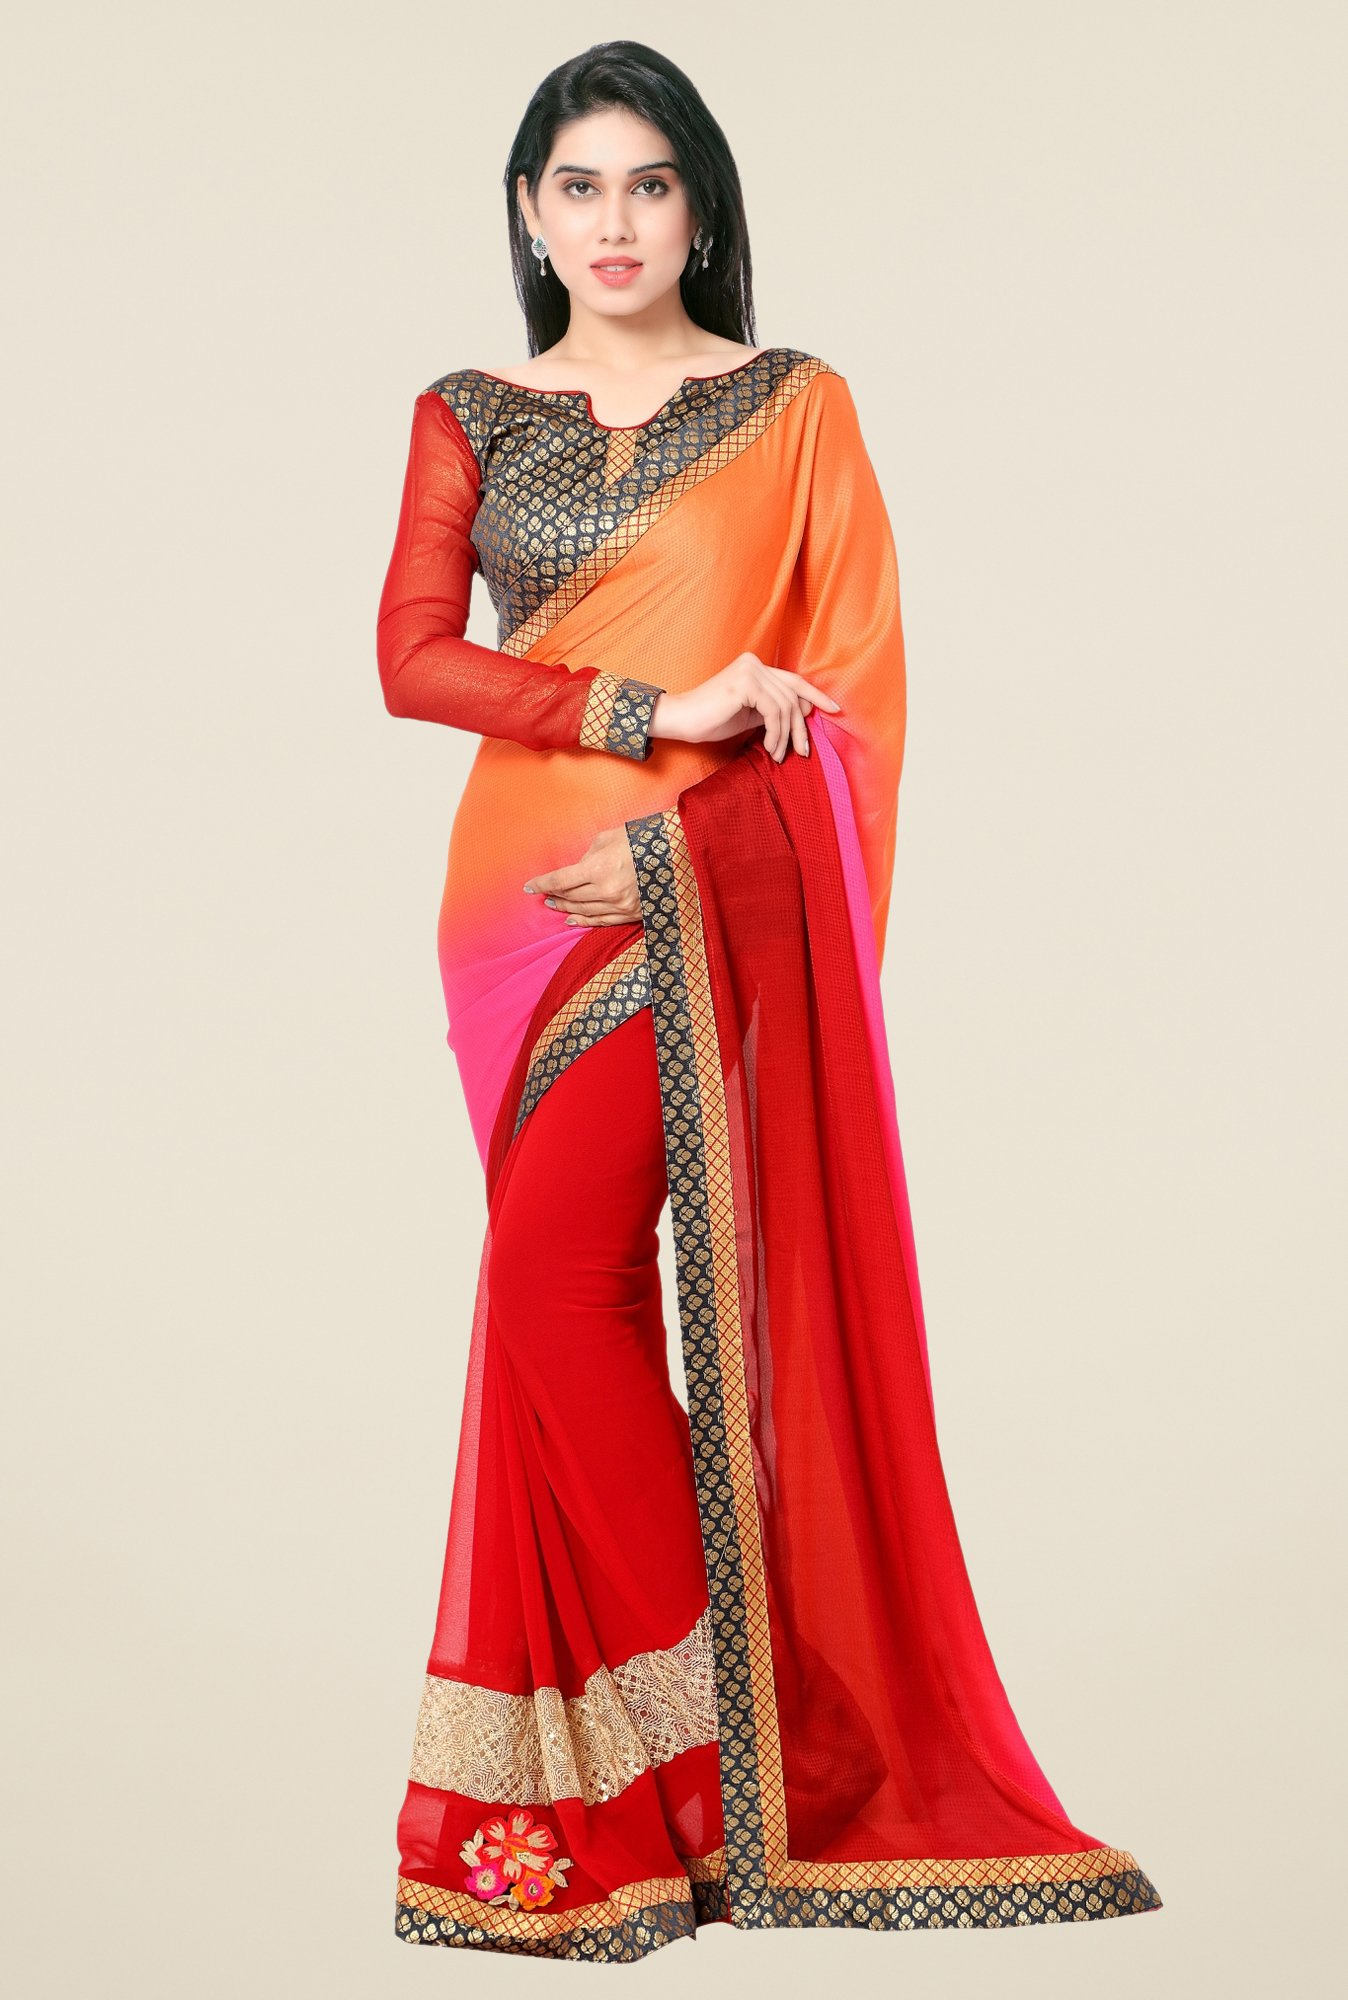 Triveni Red Solid Georgette Jacquard Saree